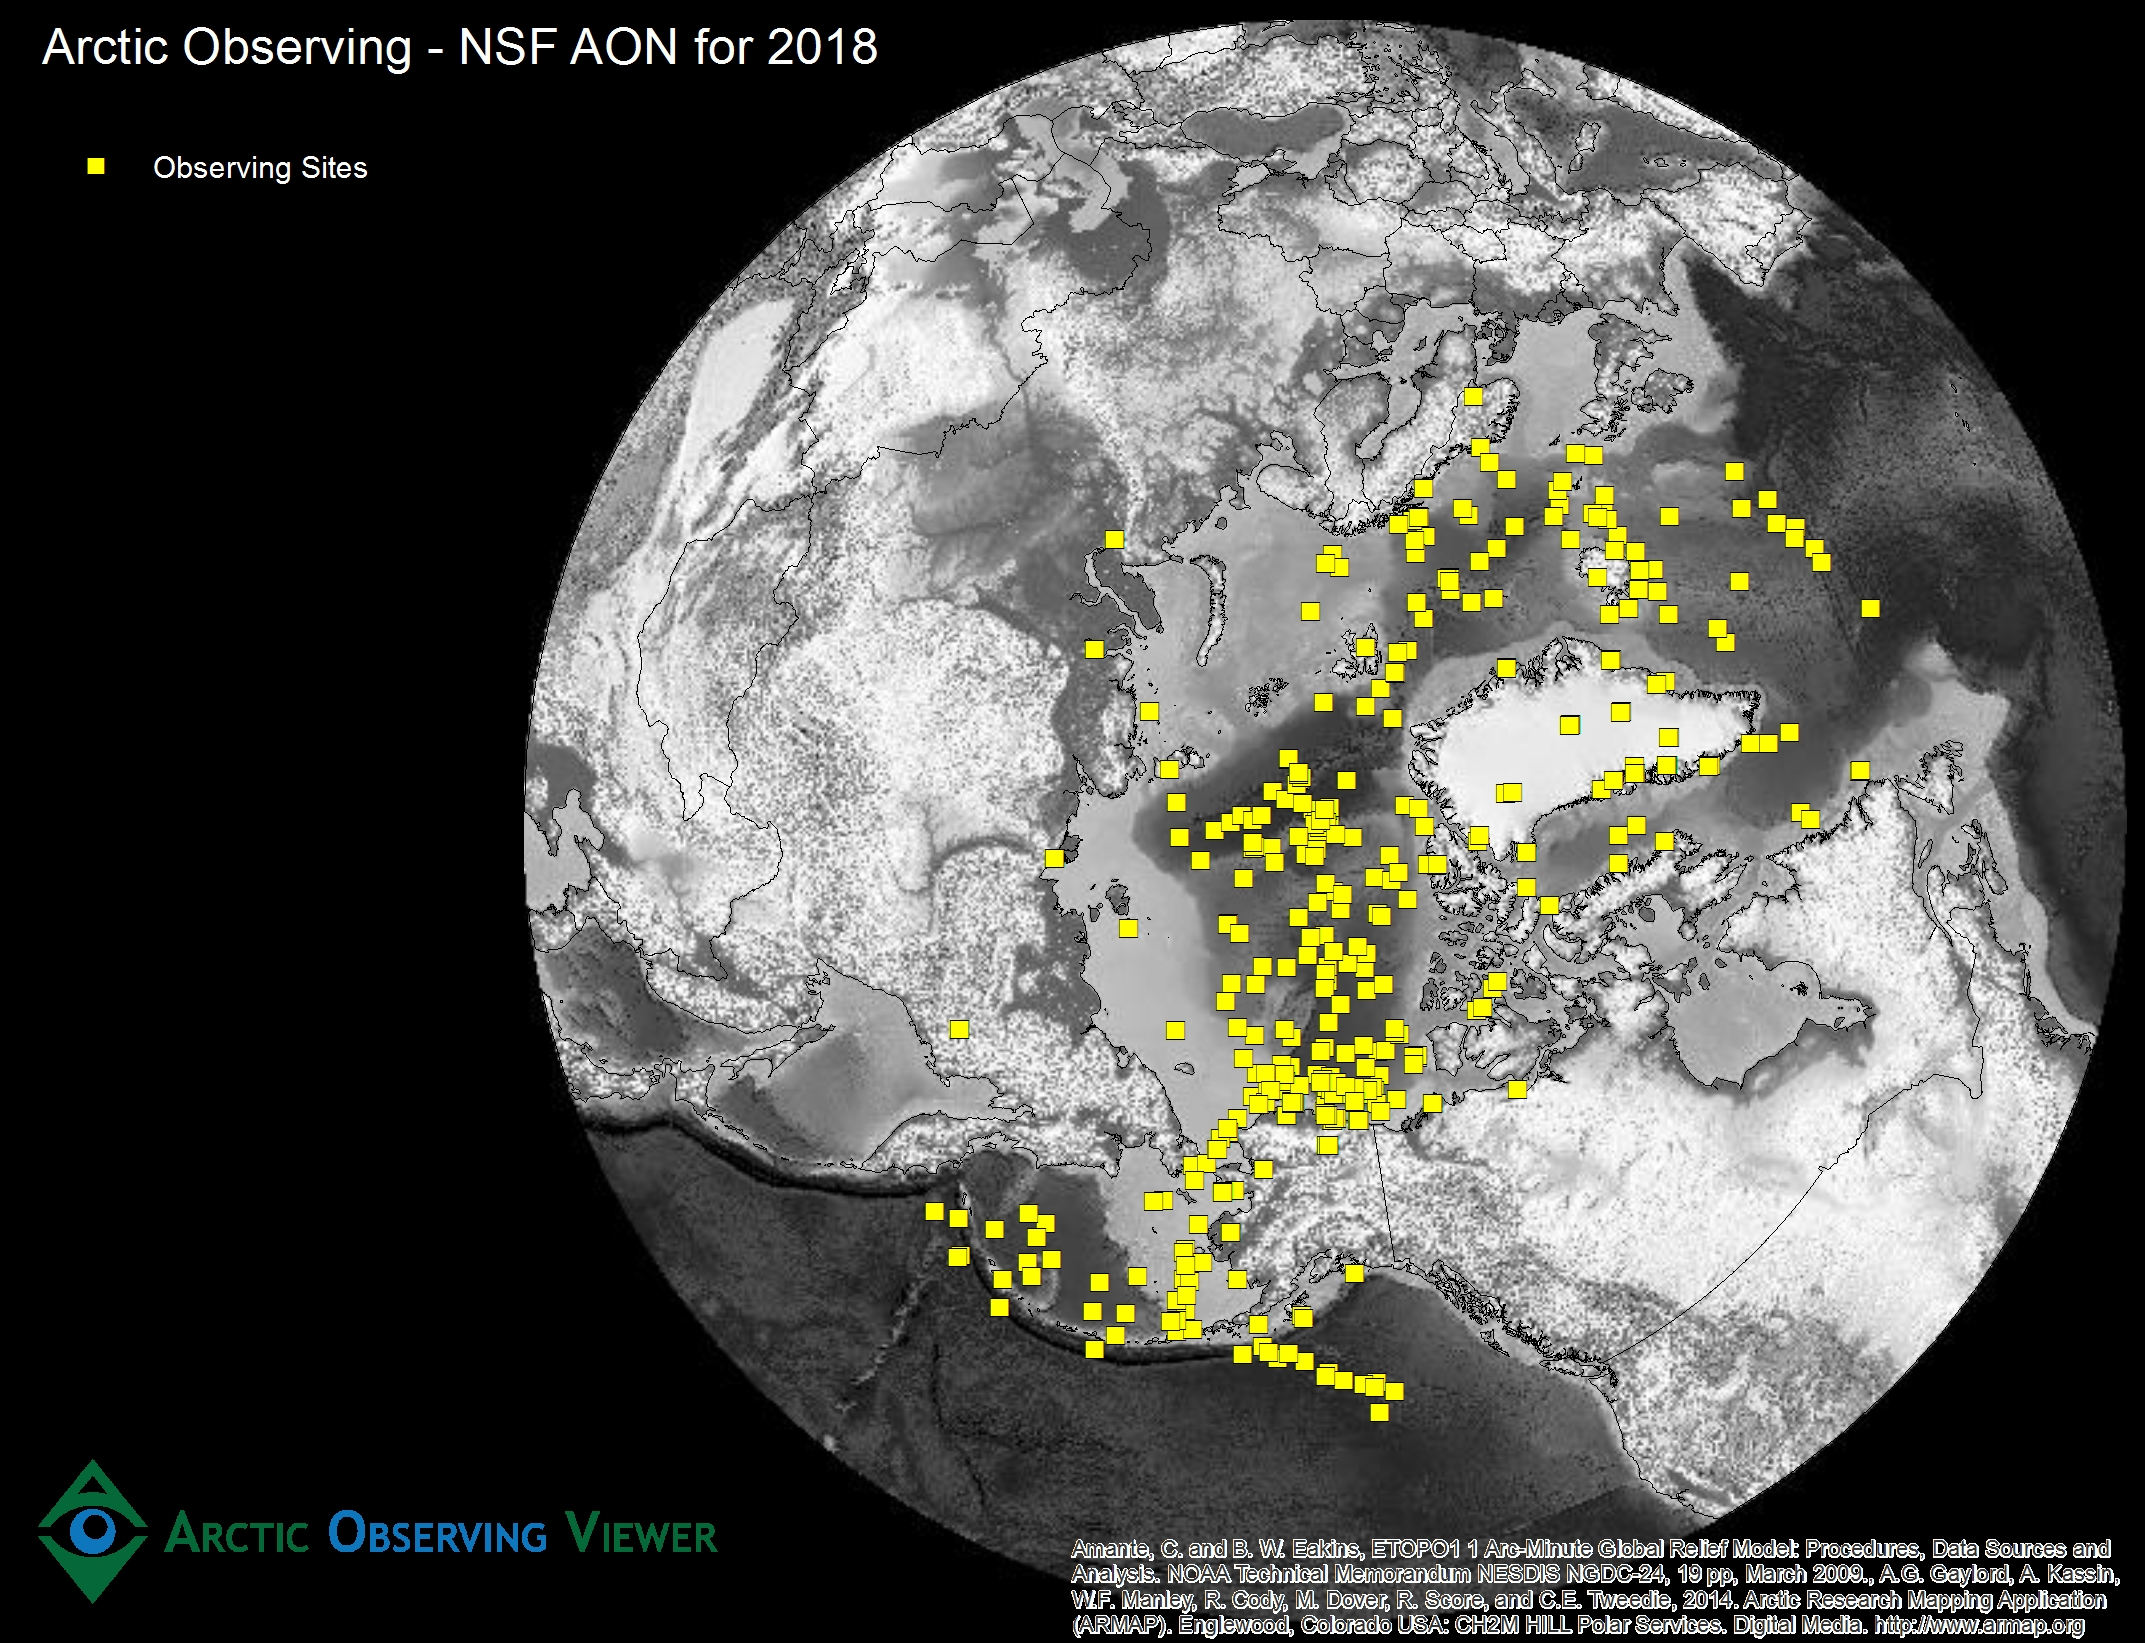 Arctic Observing - NSF AON for 2018